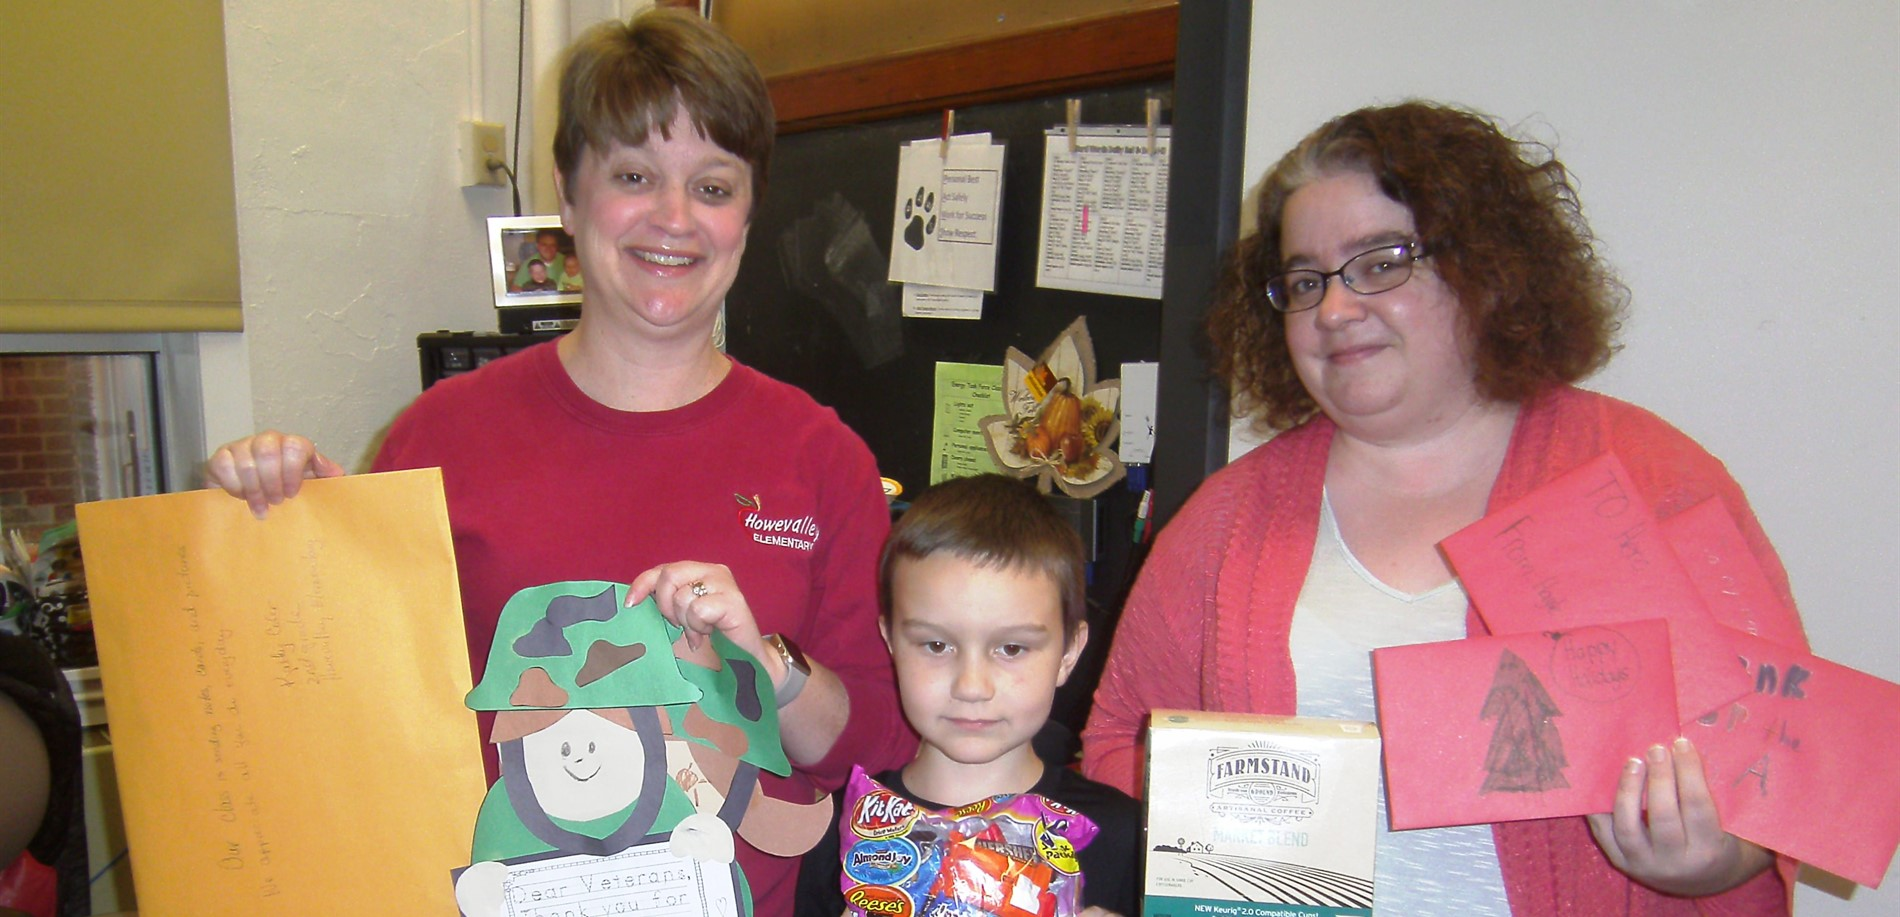 Howevalley Elementary School made care packages for soldiers who are currently deployed.